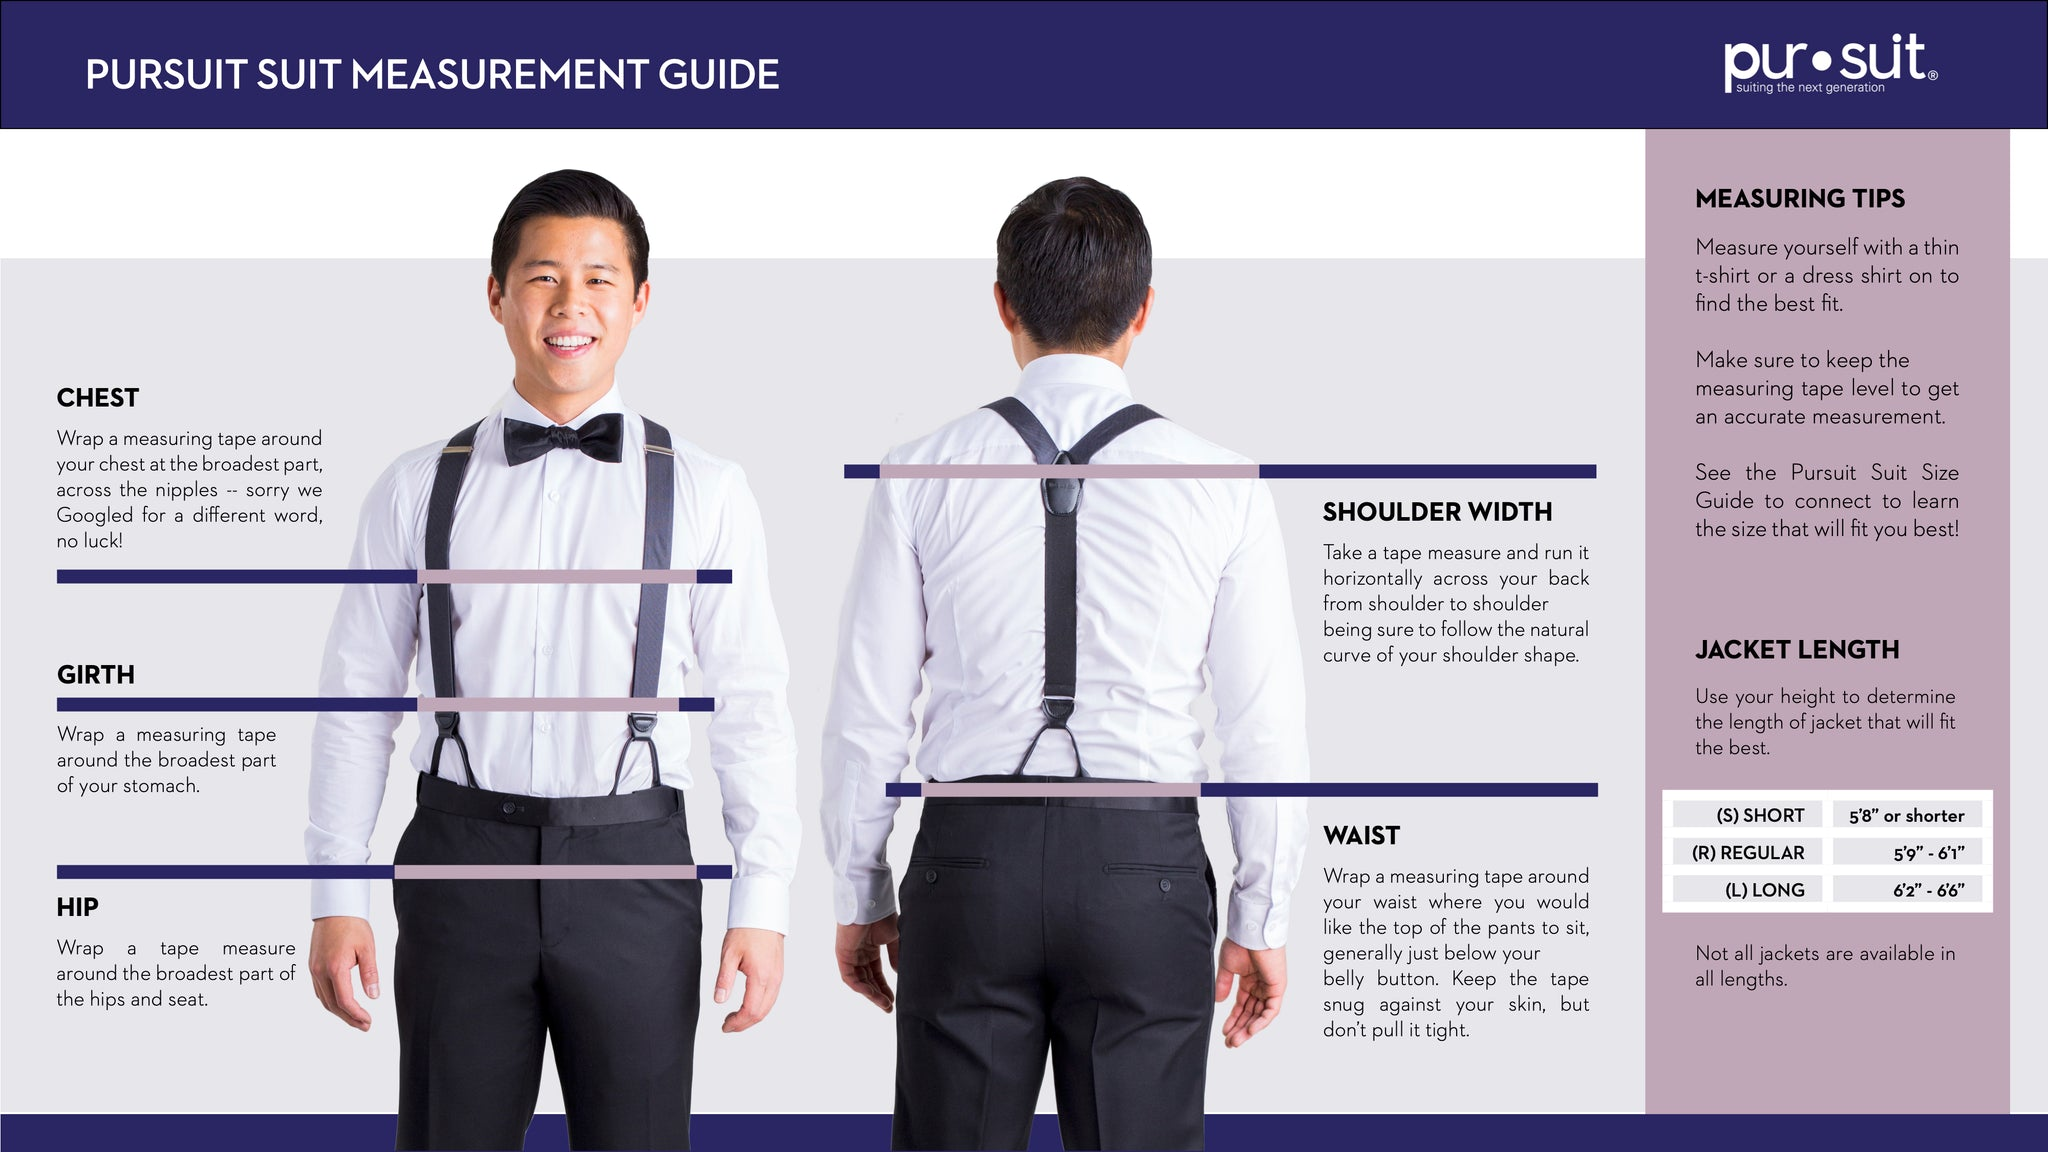 Pursuit Suit Measurement Guide